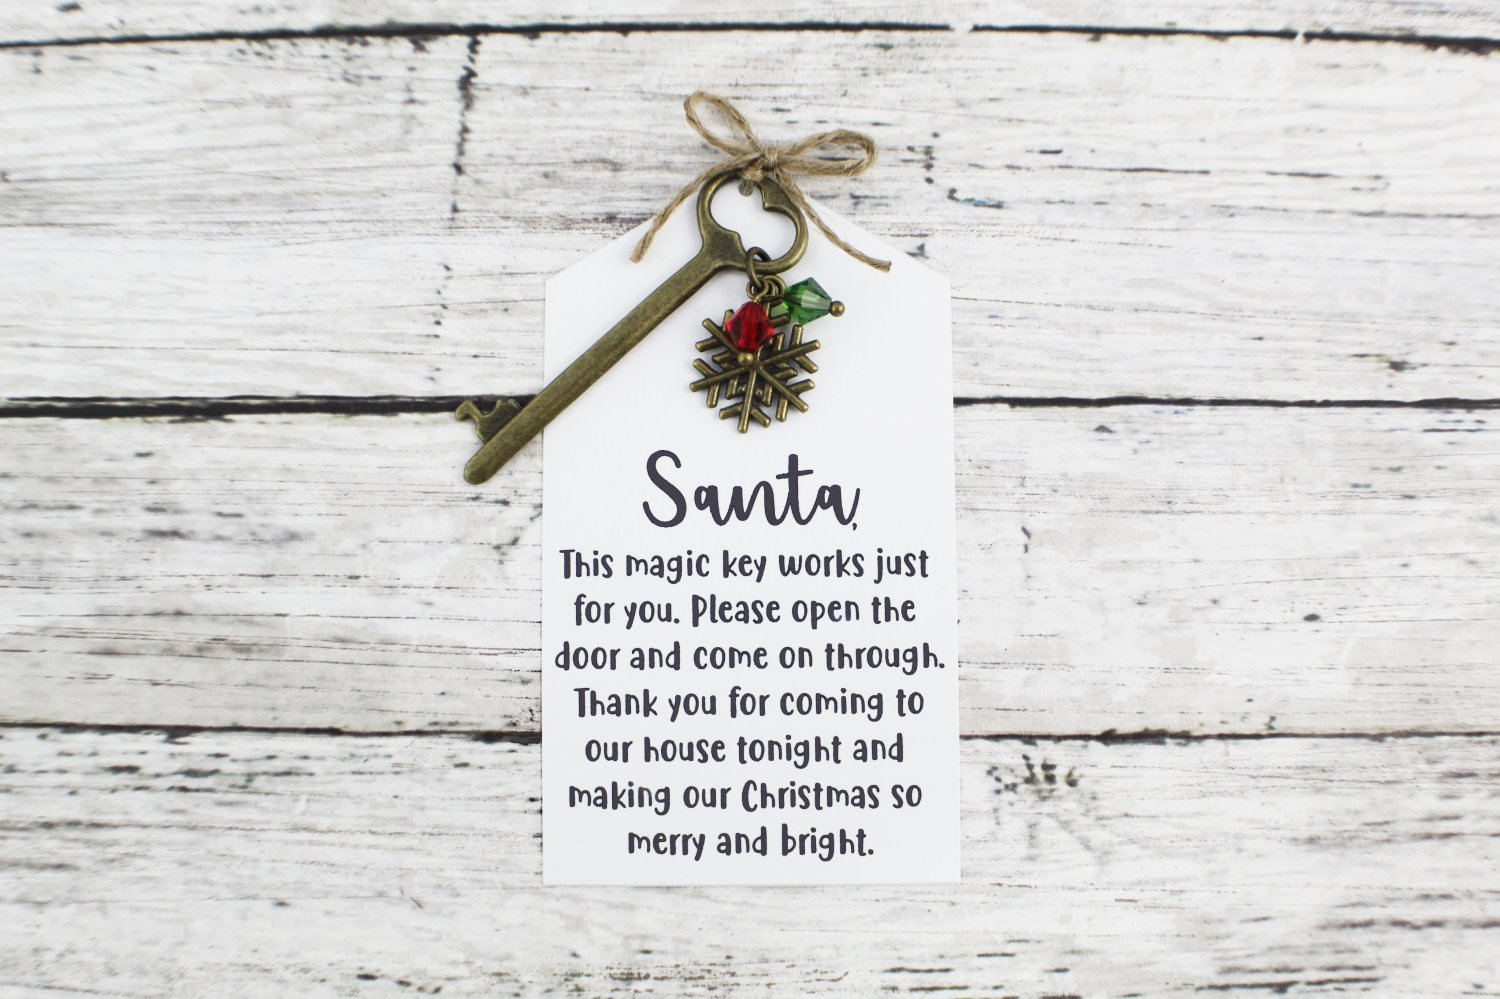 Santa Key with Snowflake Charm and Note - Choose Your Color Key (Silver, Bronze, Santa Note)